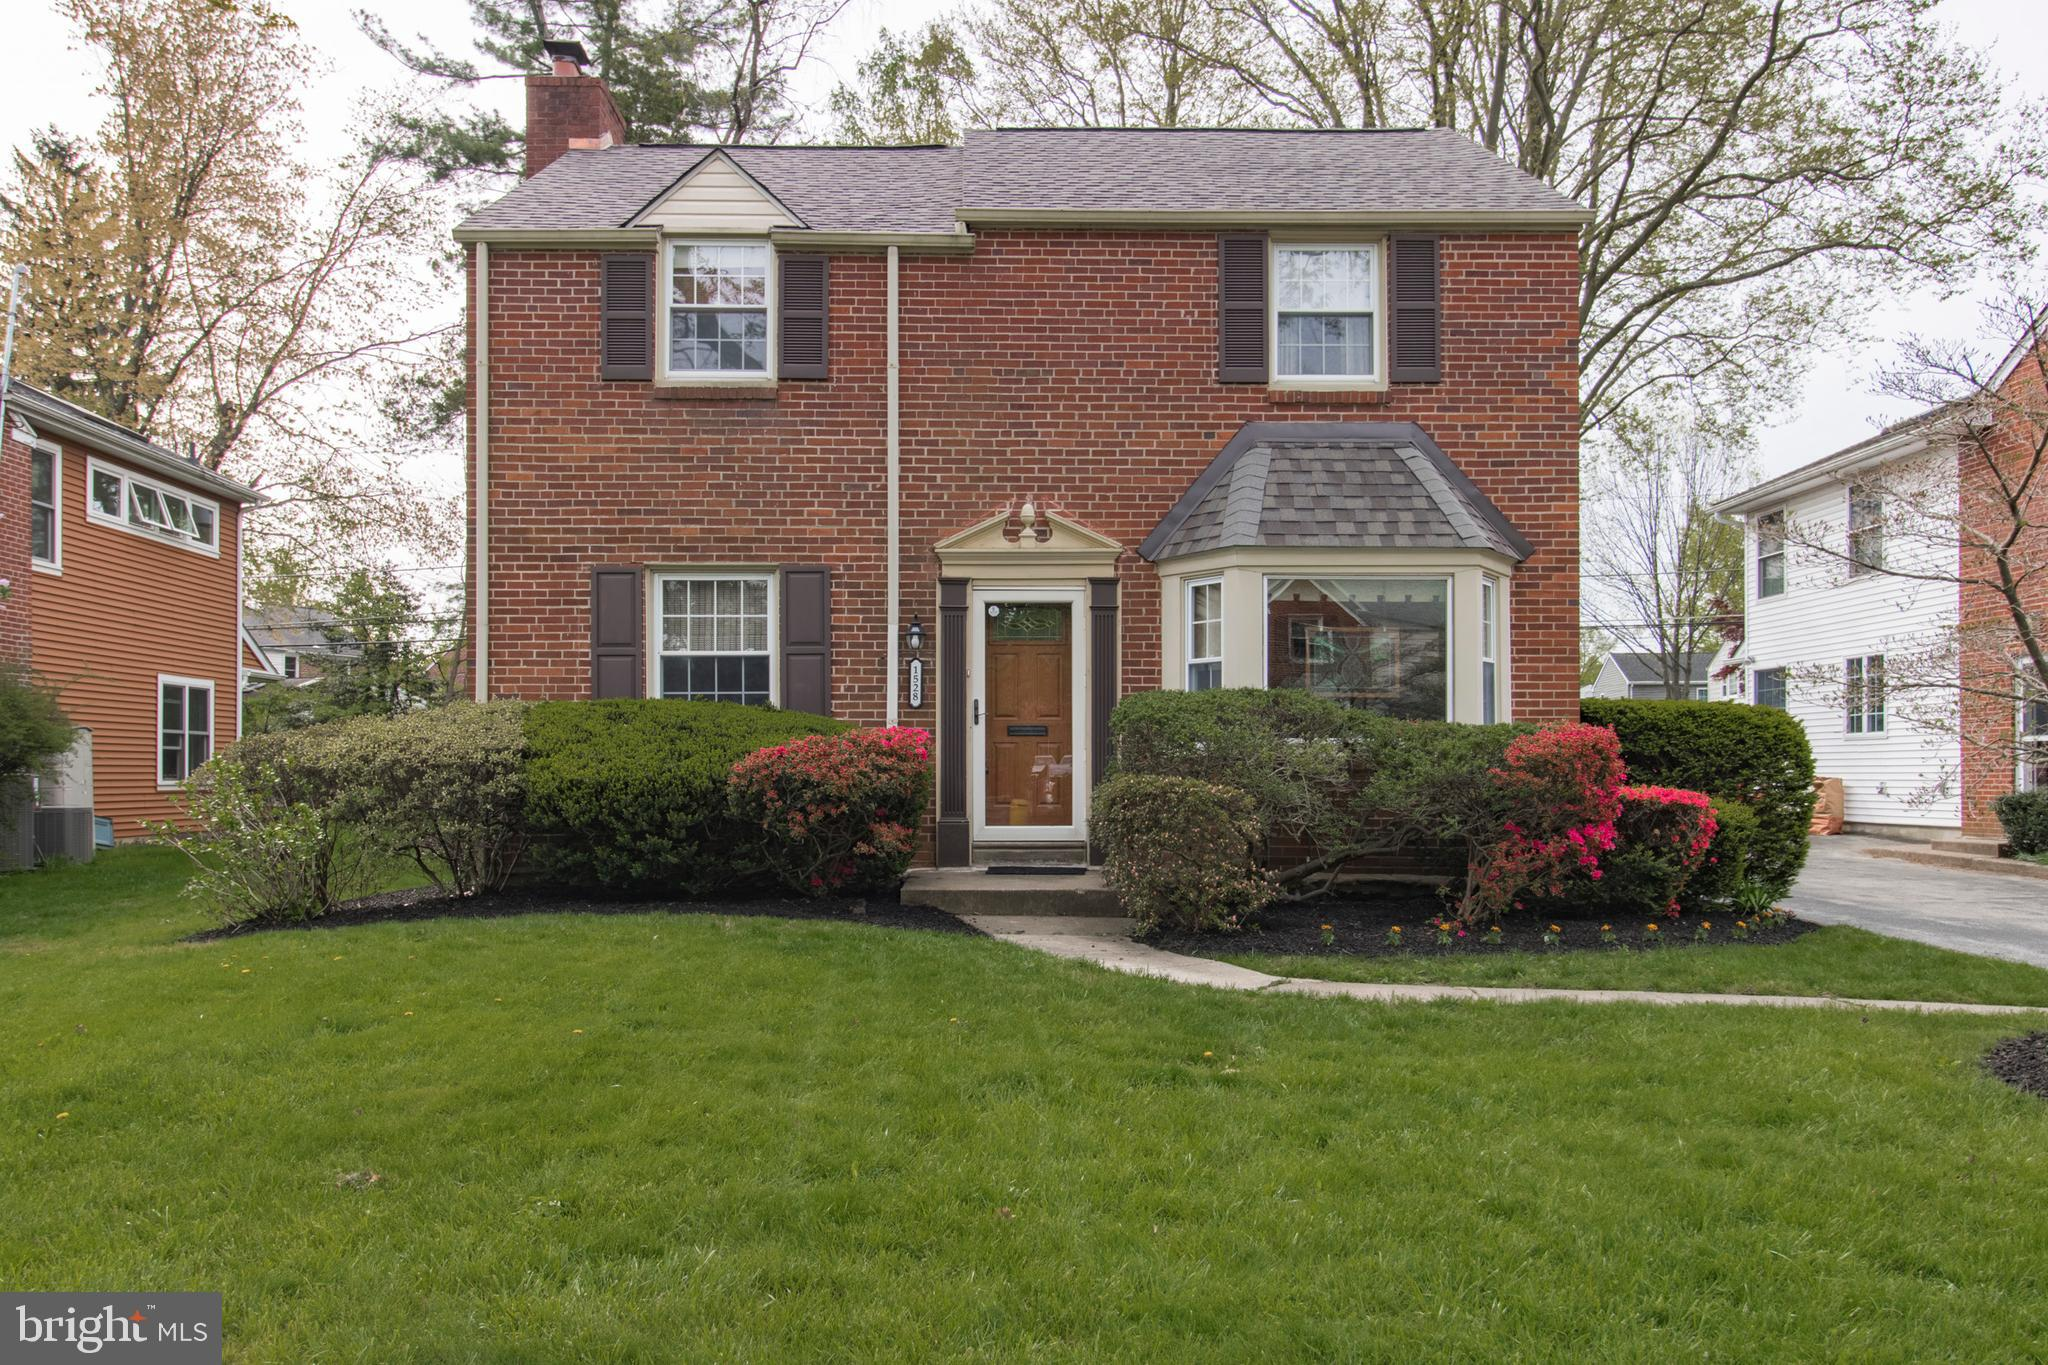 Welcome to 1528 James Road, a beautiful brick front colonial located in the award winning Lower Merion School District. This 4 bedroom, 2 1/2  bath home is just around the corner from South Ardmore Park, a fantastic spot to play tennis, baseball, talk a walk or grab the kids and head to the playground. The first floor presents a traditional layout, where you will be greeted with a sun filled living room featuring a wood burning fireplace with mantel and original hardwood flooring. An addition was completed, which now holds an entertainment room with plentiful custom built-in shelving, storage and a powder room. The kitchen includes stainless steel appliances, granite countertops, subway style backsplash and an additional entrance way for convenient driveway access. Entertain your guests in the adjacent dining room, which has a wonderful bay window overlooking the landscaped front yard. The main bedroom upstairs includes two custom closets, each with generous space and a full bath. This floor also has three additional bedrooms, each abundant in size that share a full bath. The home's backyard is spacious and gives plenty of space to entertain, play or just relax. What a truly wonderful location, enjoy everything it has to offer including being minutes to Suburban Square, Whole Foods, Train Stations and many restaurants!